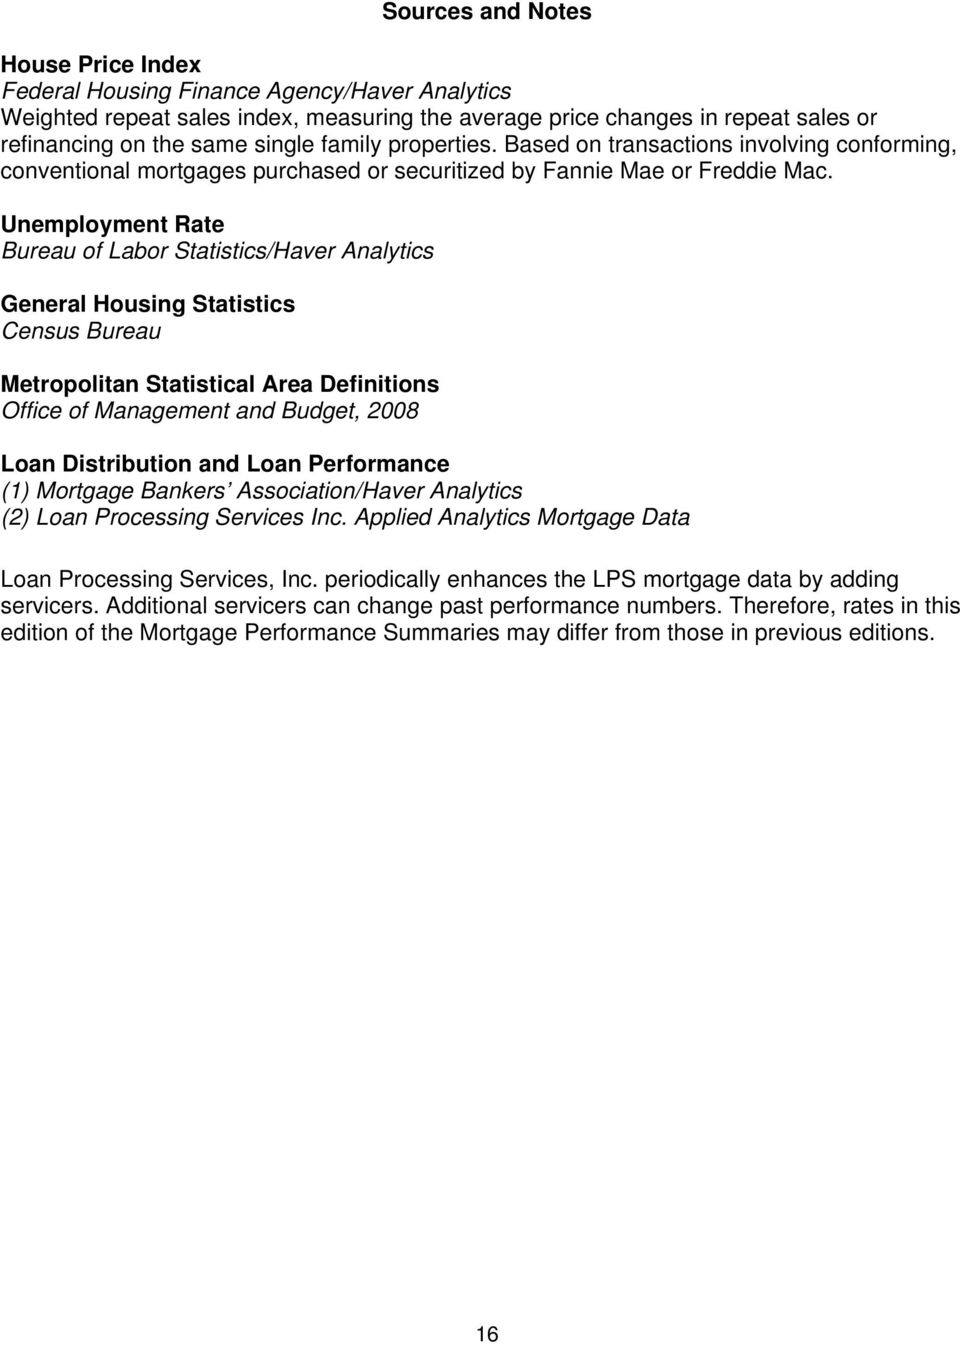 Unemployment Rate Bureau of Labor Statistics/Haver Analytics General Housing Statistics Census Bureau Metropolitan Statistical Area Definitions Office of Management and Budget, 2008 Loan Distribution